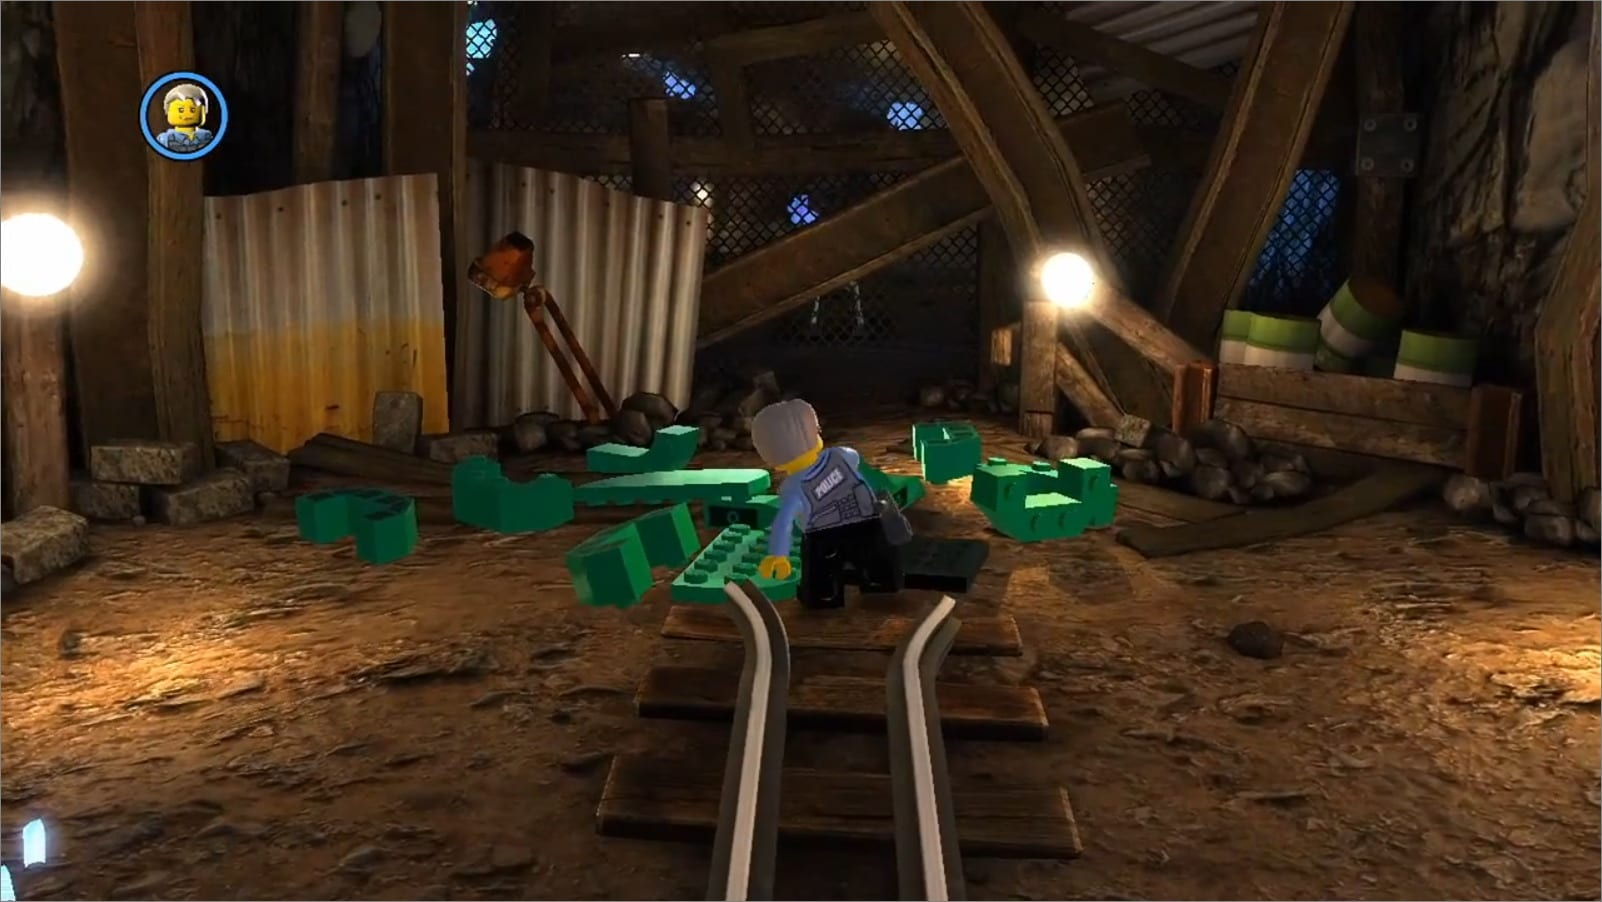 LEGO_City_Undercover_screenshot_39.jpg